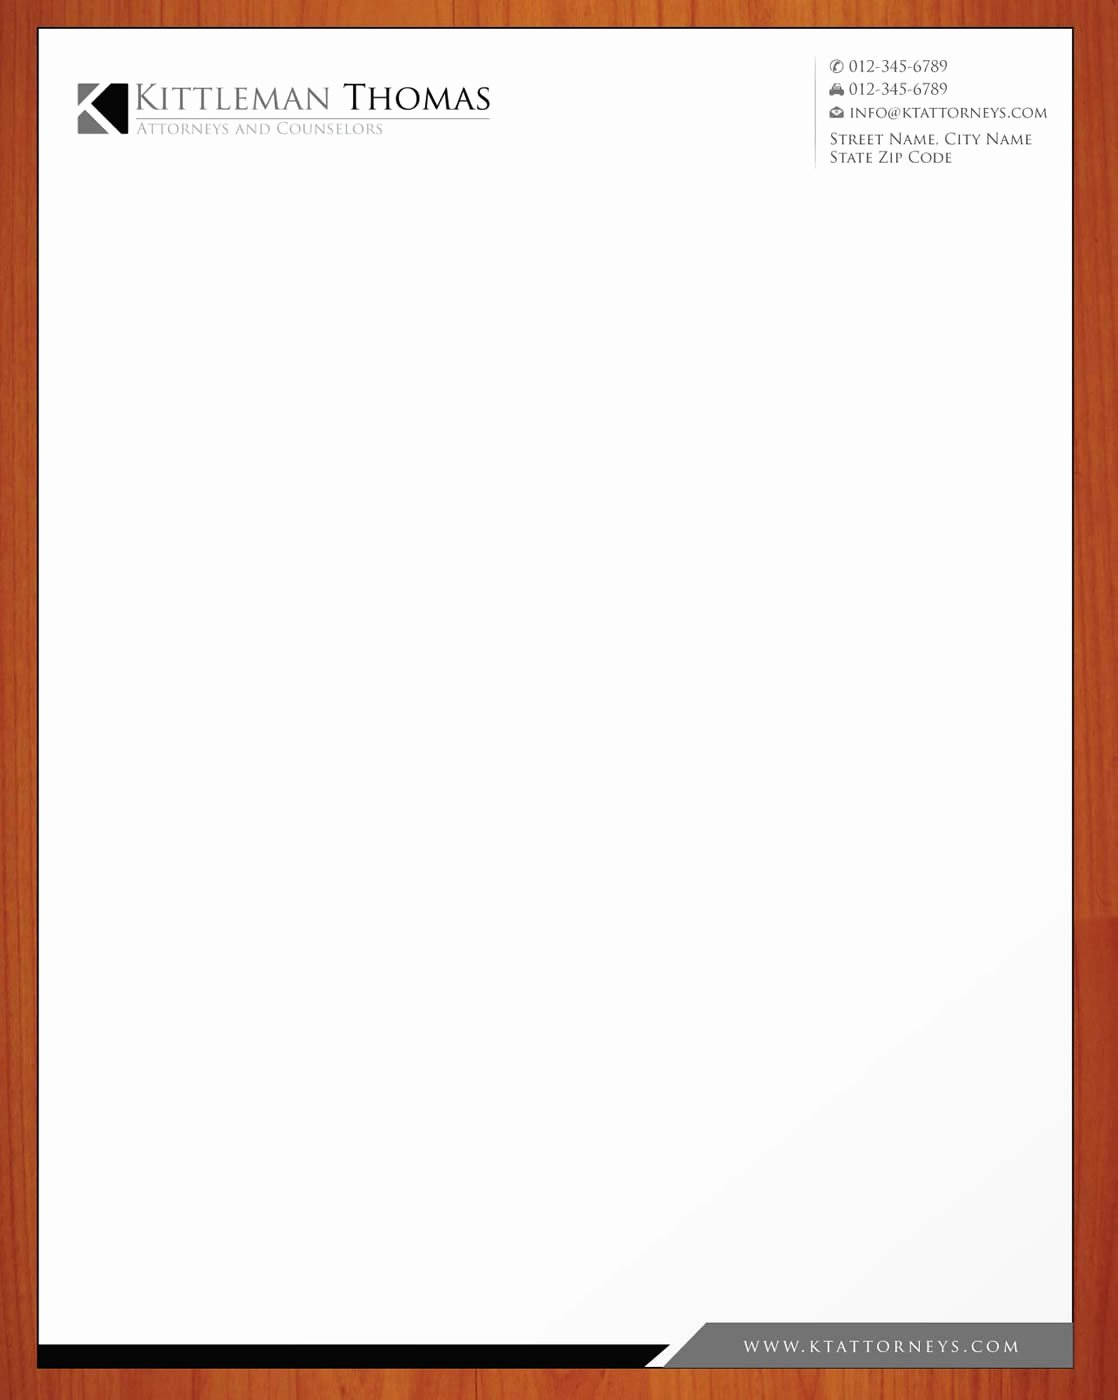 Law Firm Letterhead Template Lovely Law Firm Letterhead